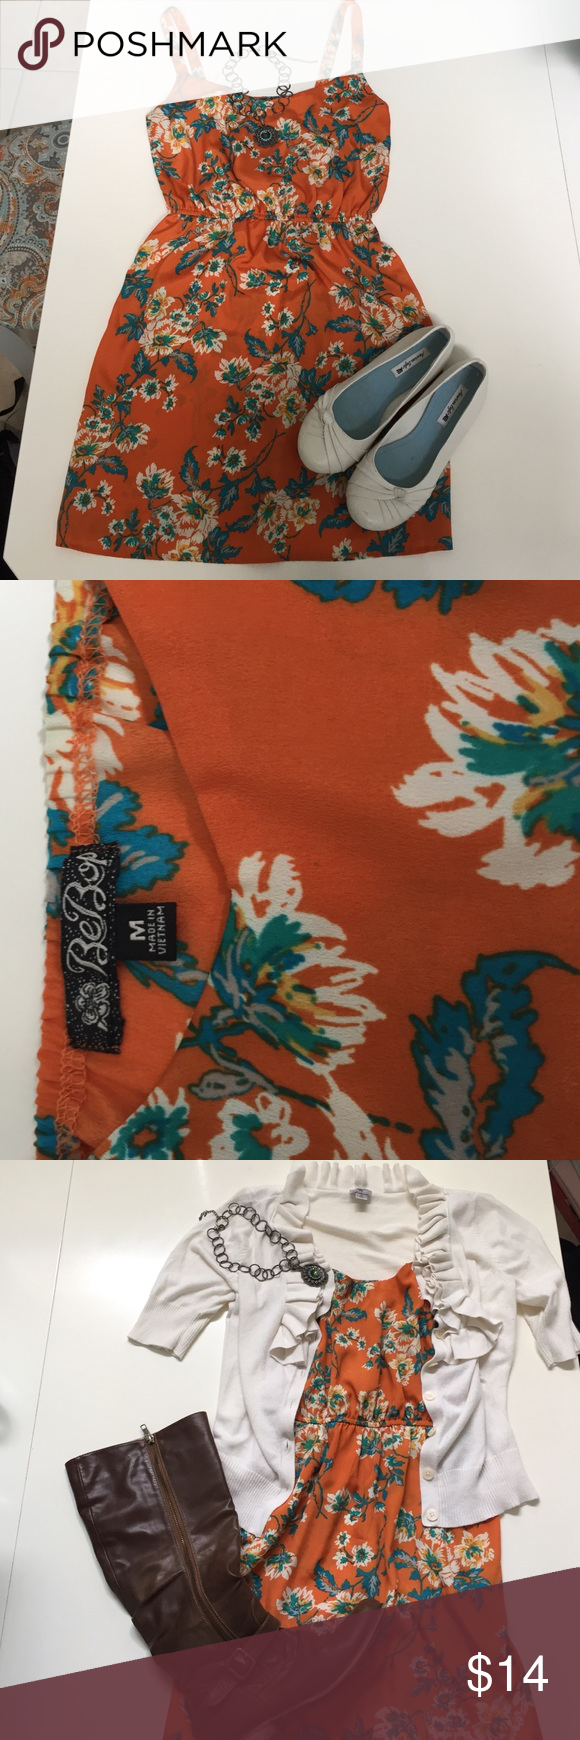 BeBop dress BeBop, Sz M, beautiful orange dress with a turquoise and yellow floral print. 100% polyester, 34in from shoulder to hem. Elastic waist. Stunning, layer for fall, perfect autumn colors! BeBop Dresses Mini